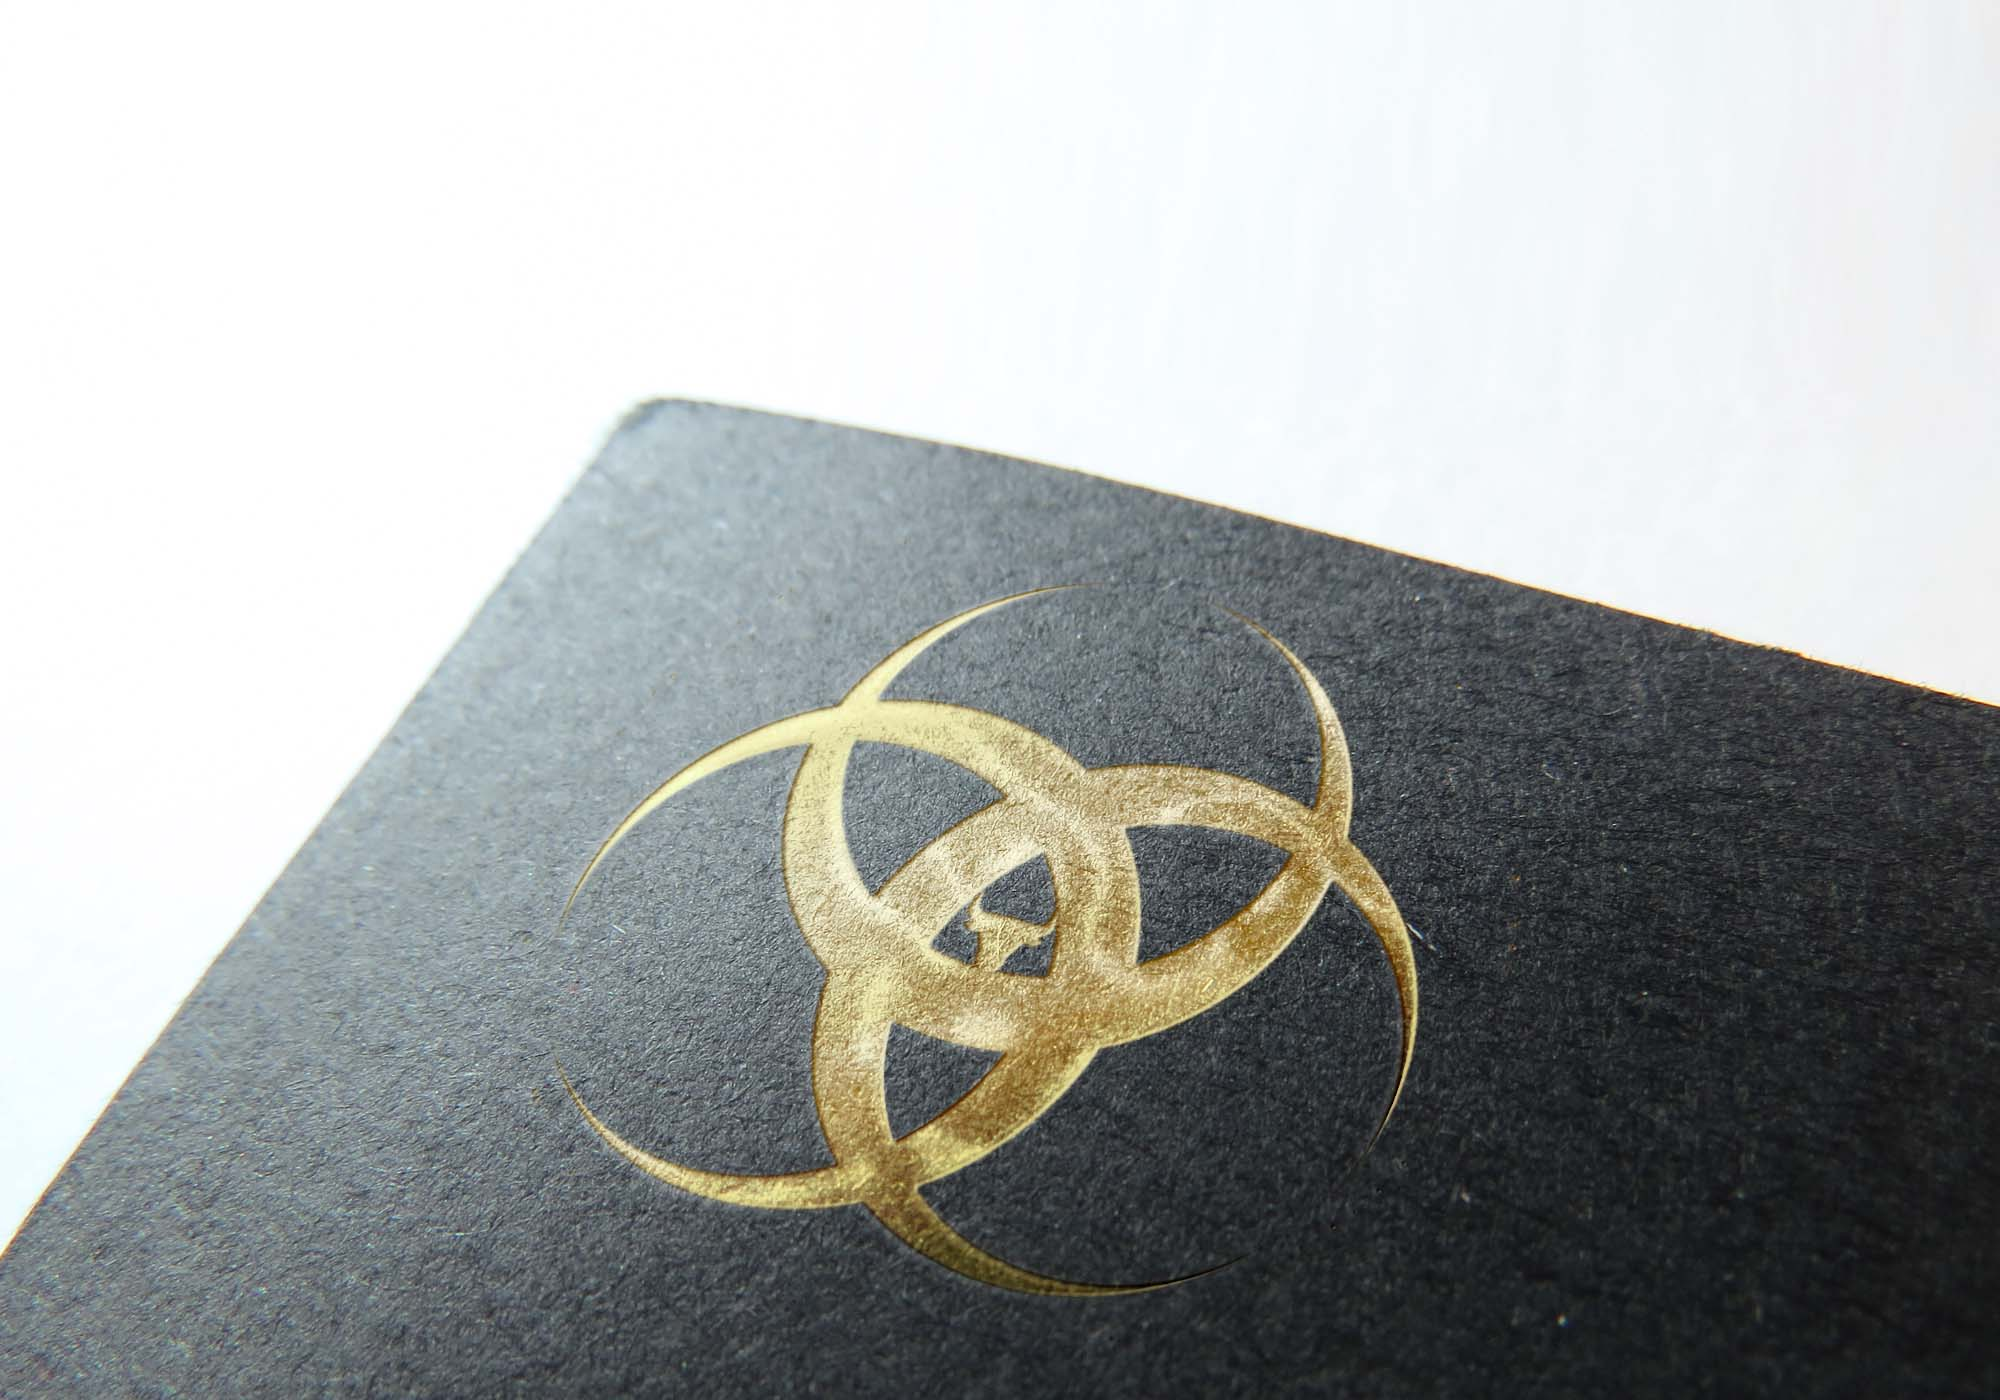 Slick Gold Foil Stamp Mockup 2